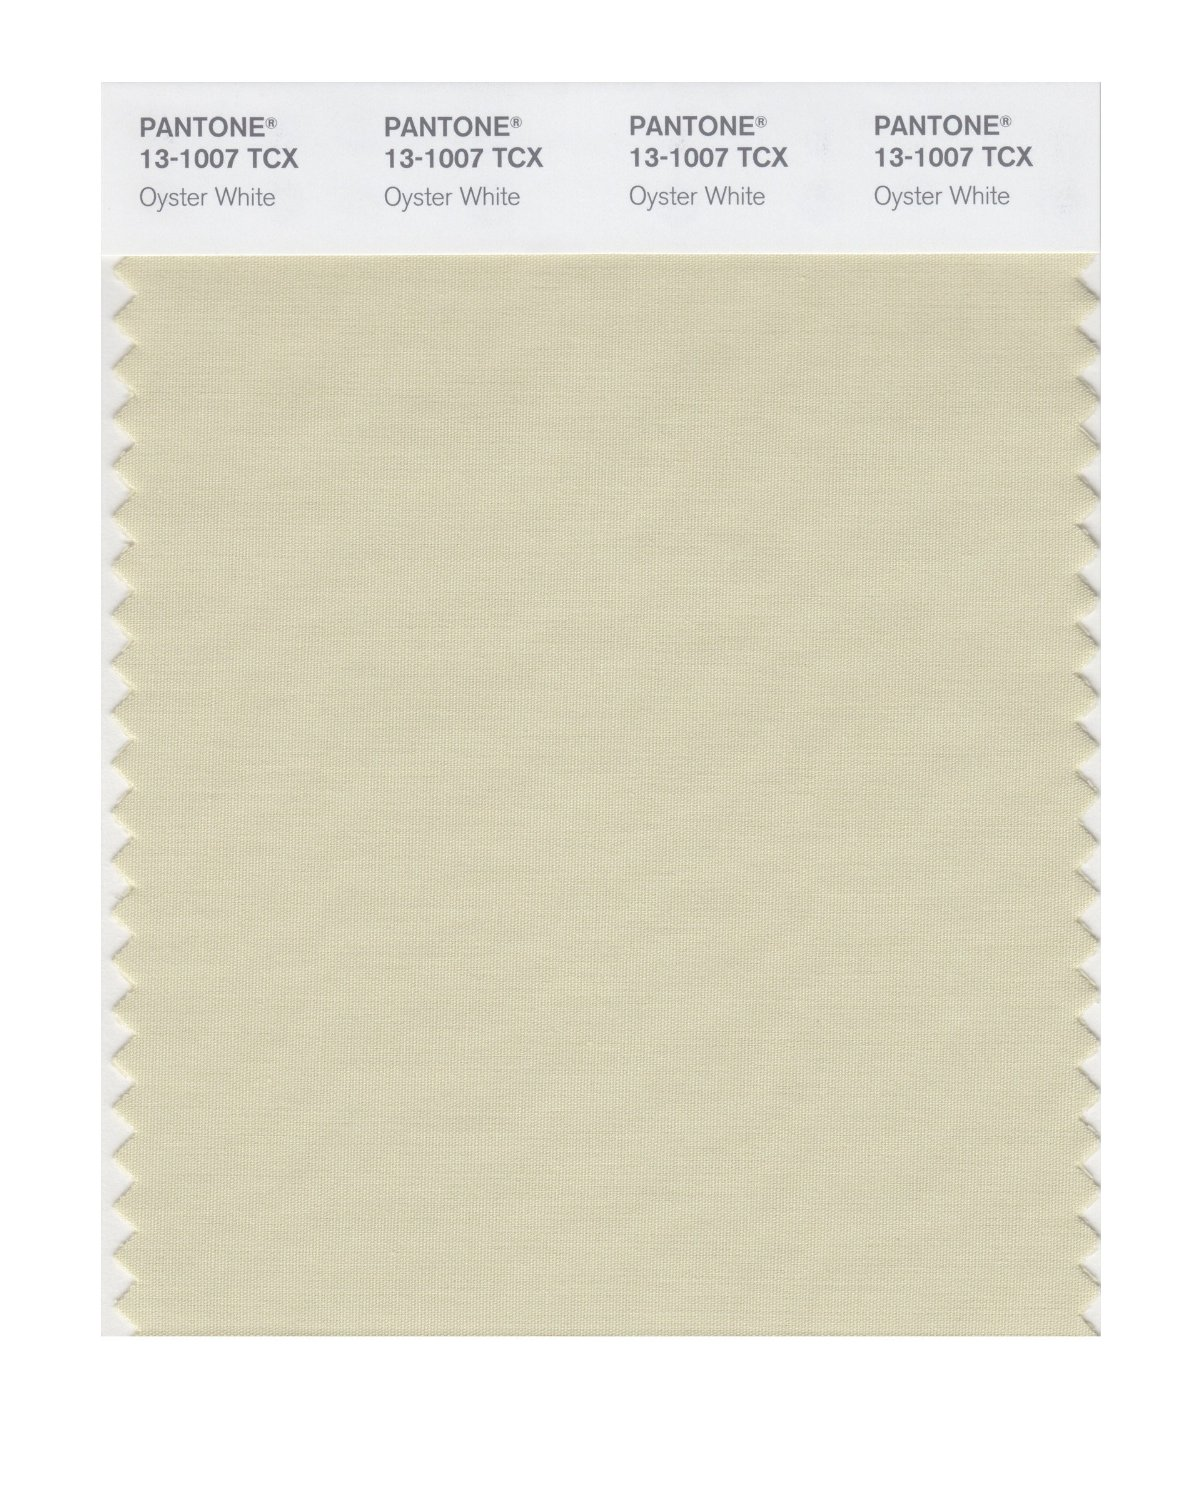 Pantone Smart Swatch 13-1007 Oyster White